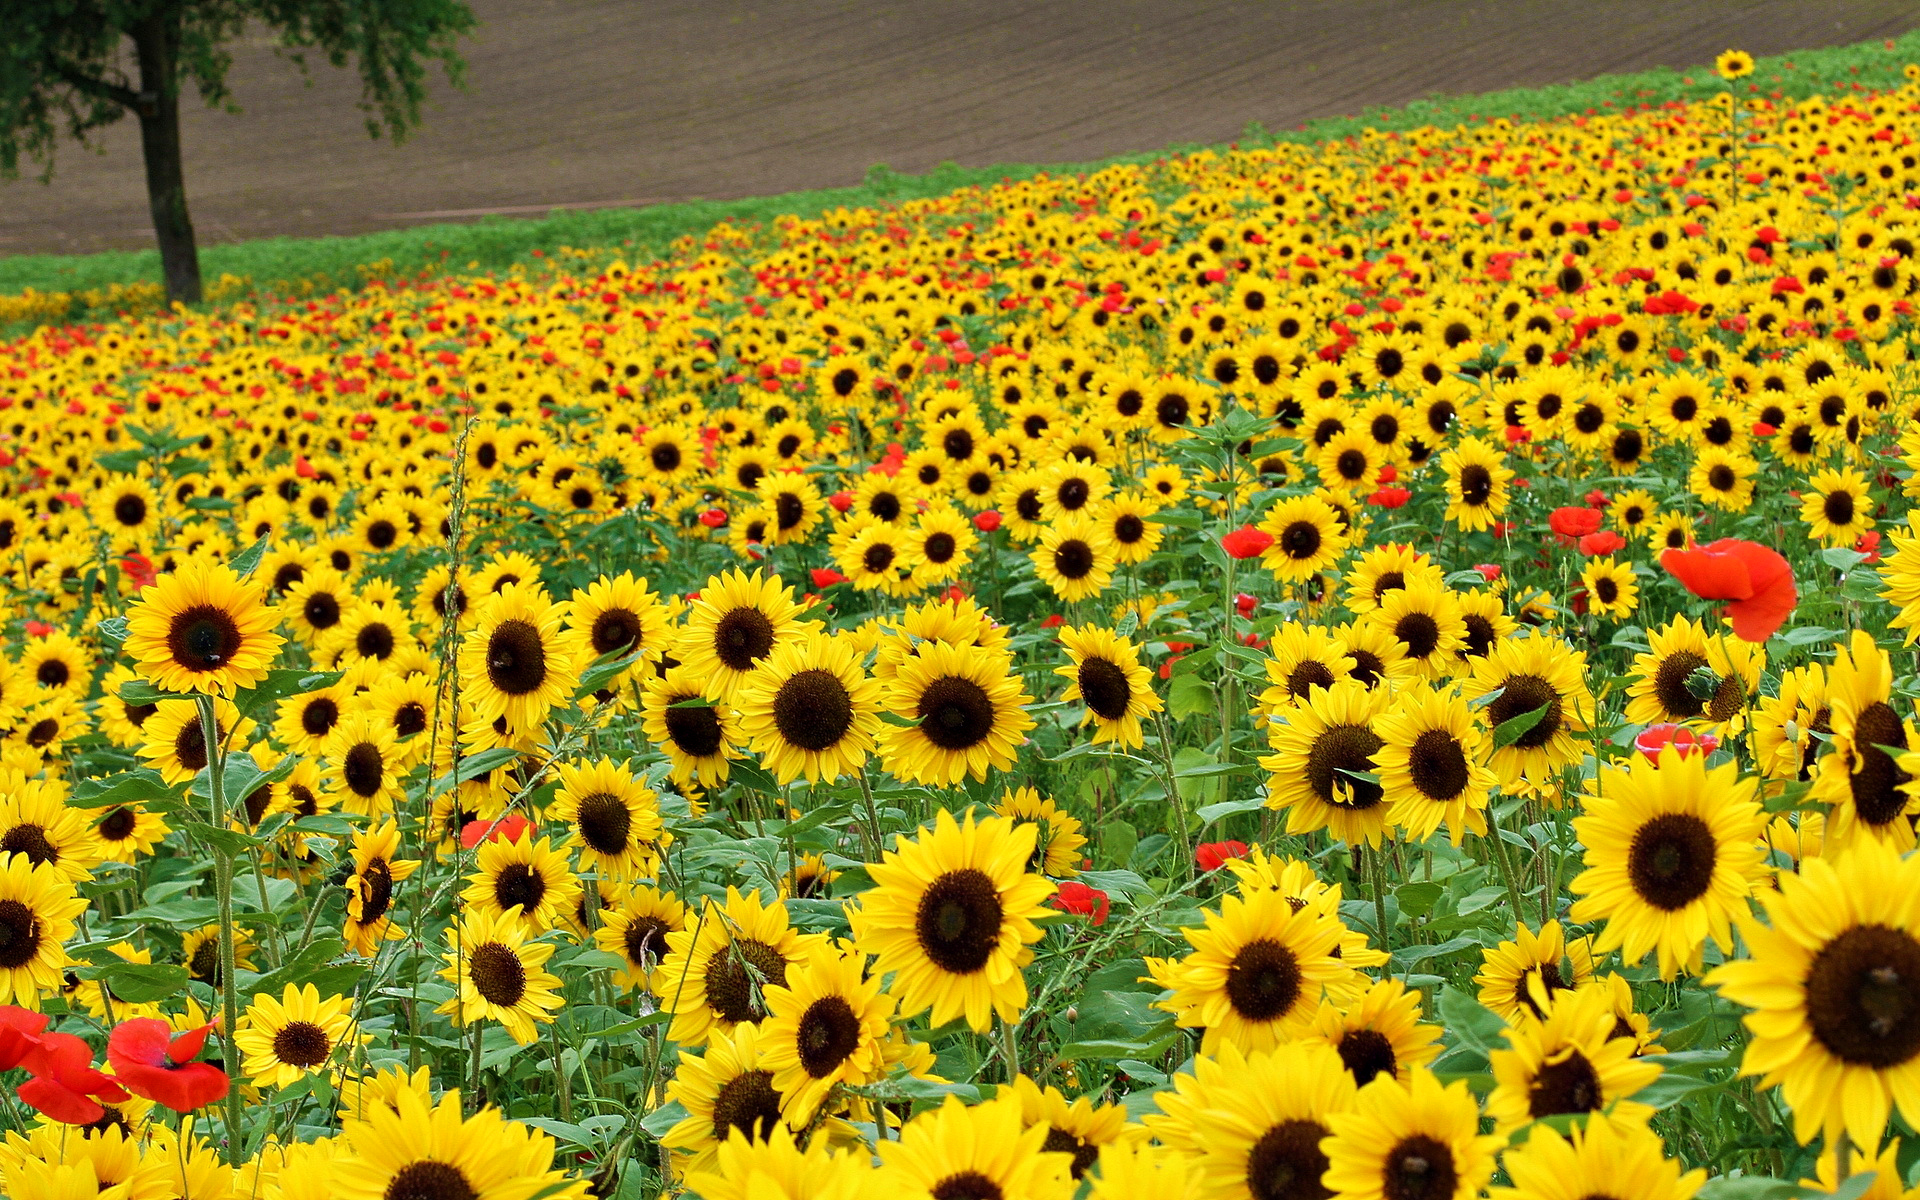 sunflowers_view_red_lovely_field_of_flowers-hd-wallpaper-678210